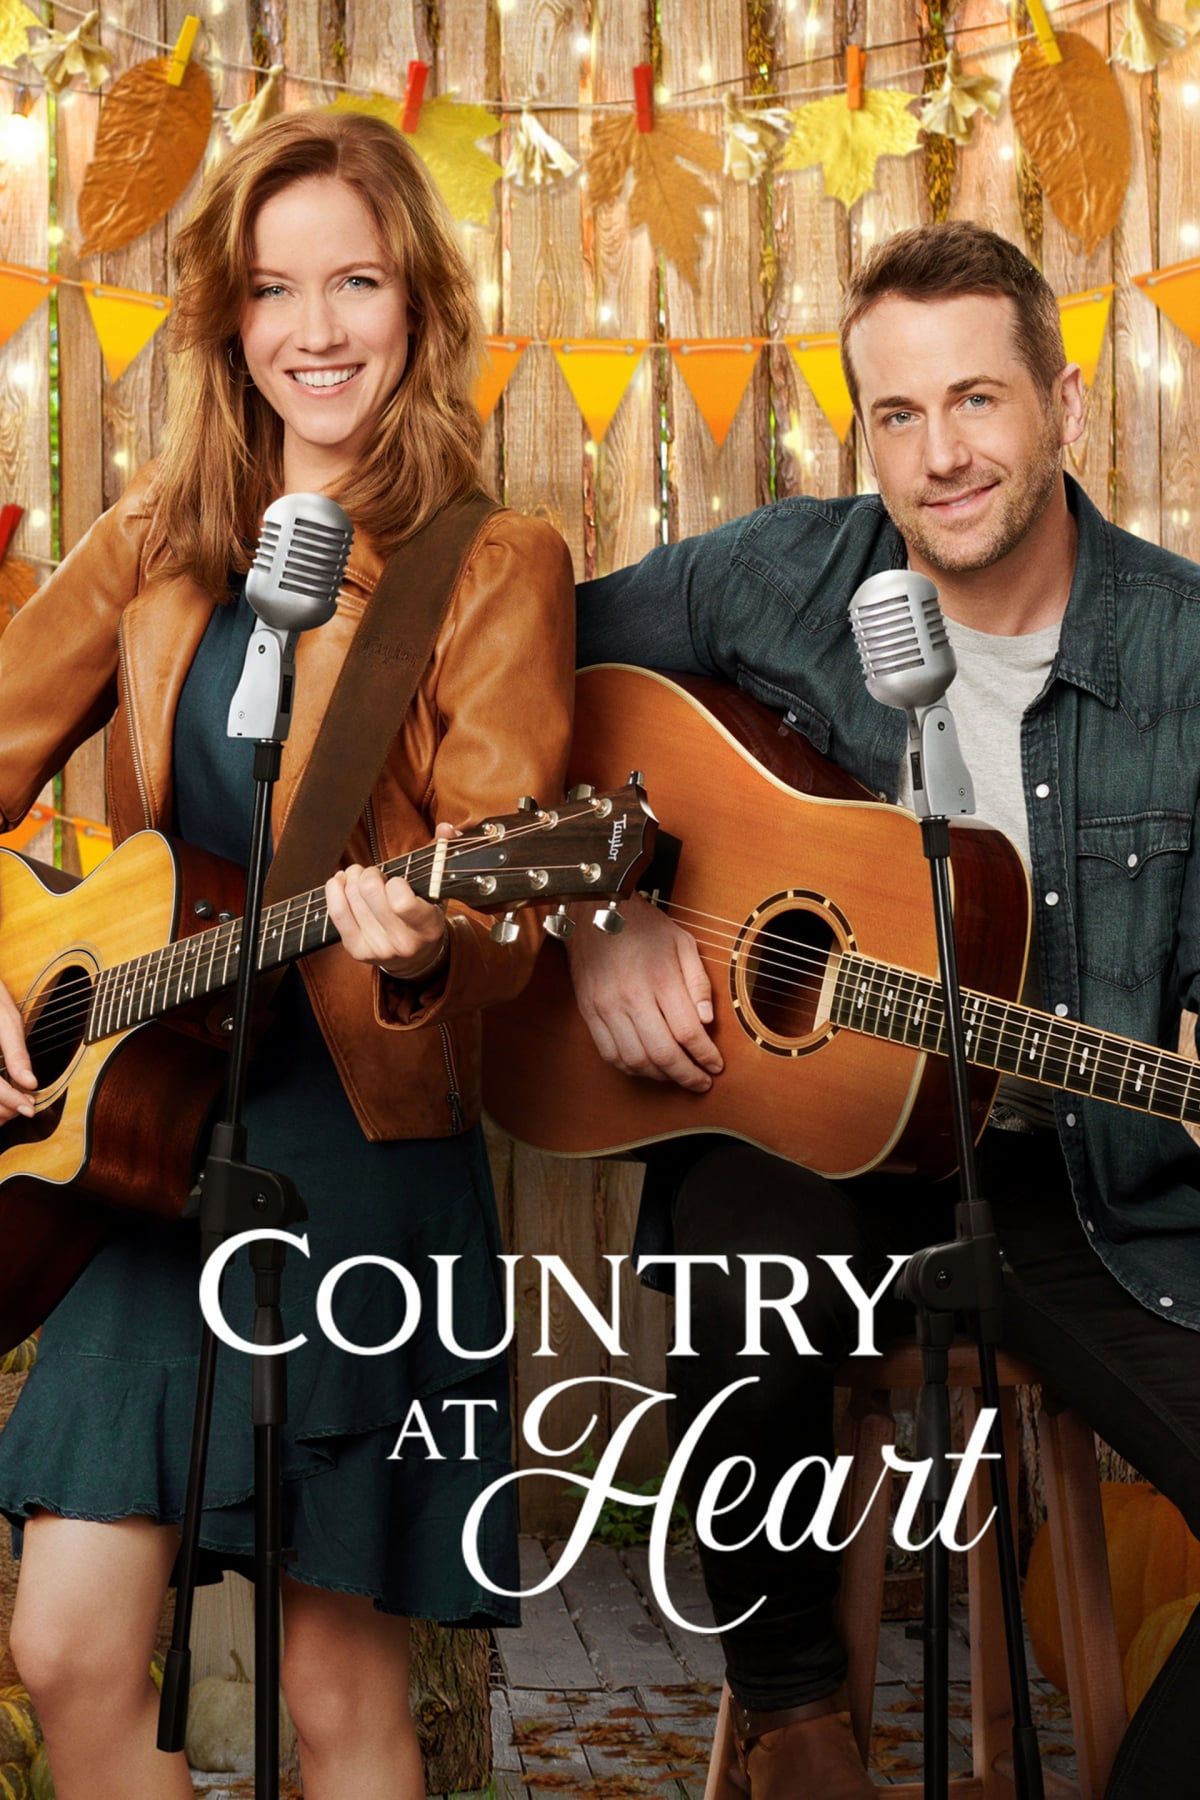 Poster: Country at Heart